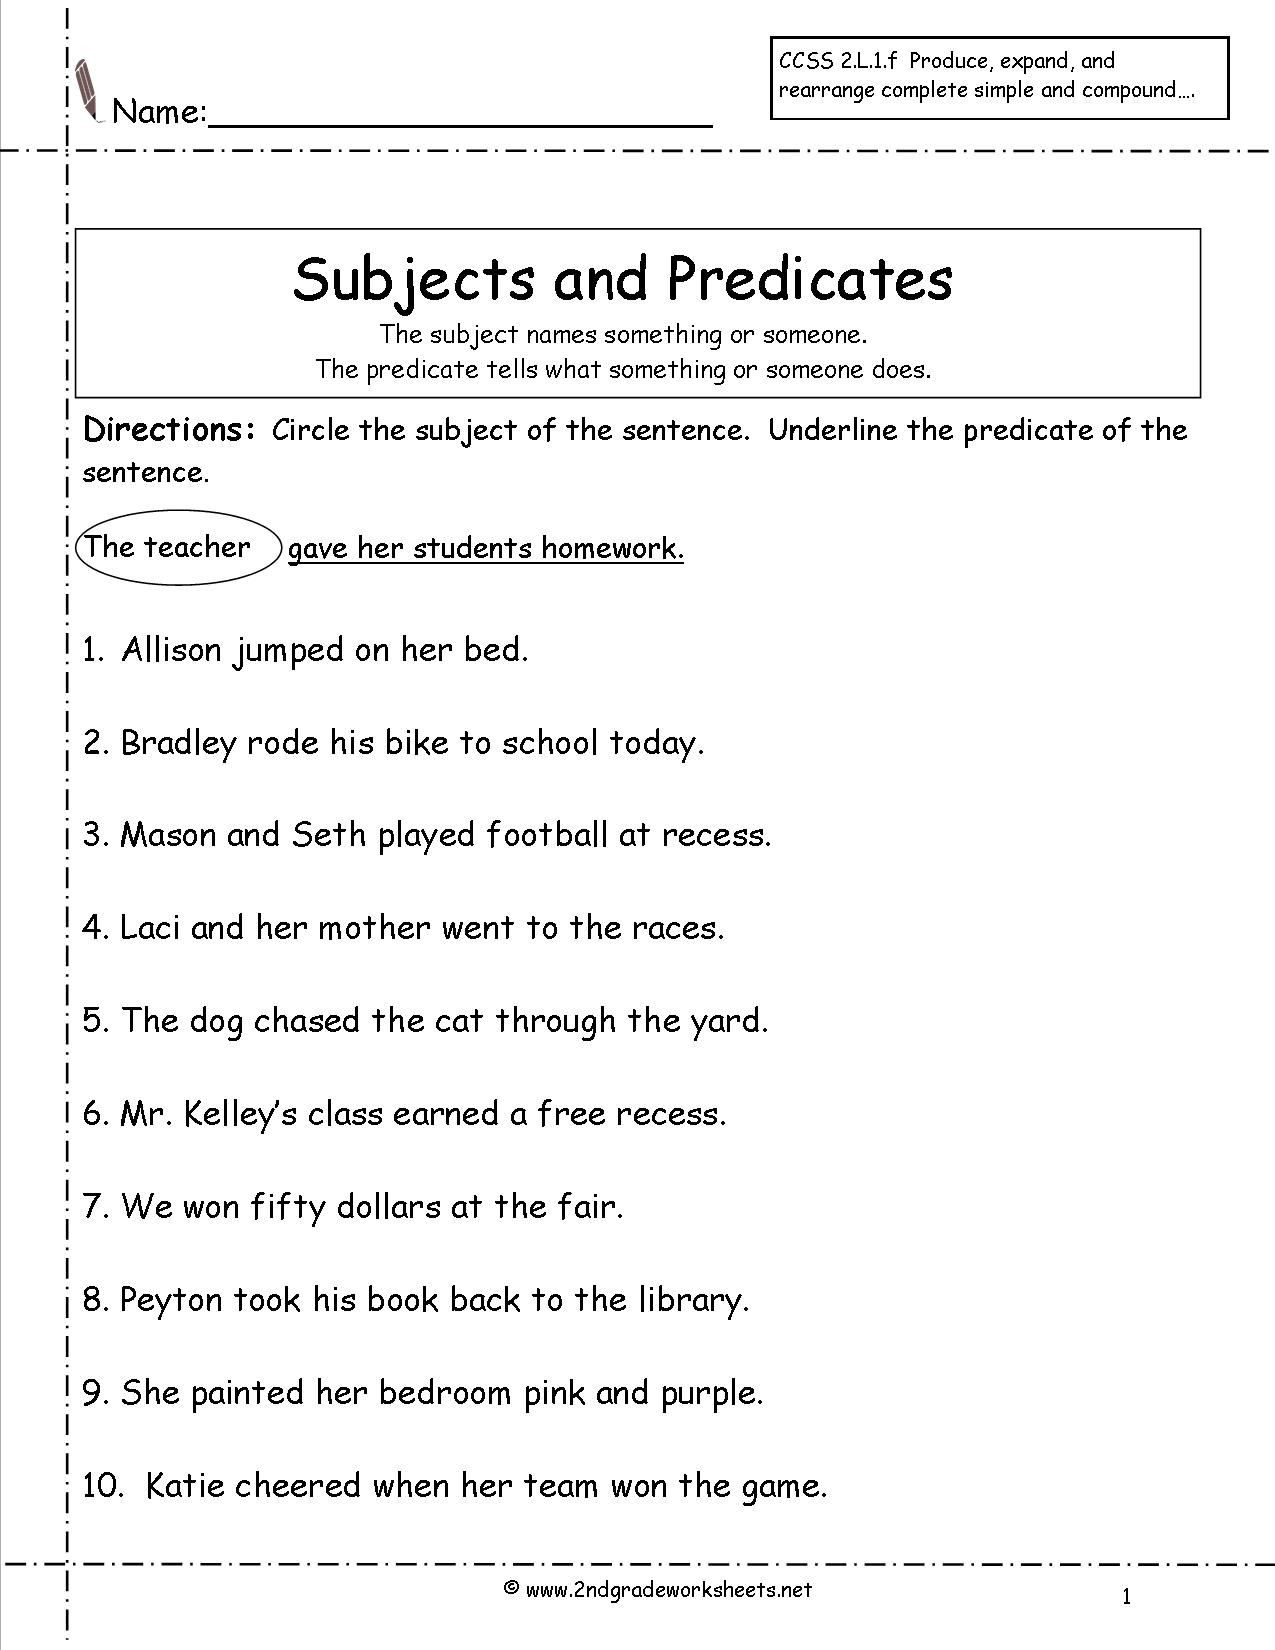 Subject and Predicate Printable Worksheets Subject Predicate Worksheets 2nd Grade Google Search